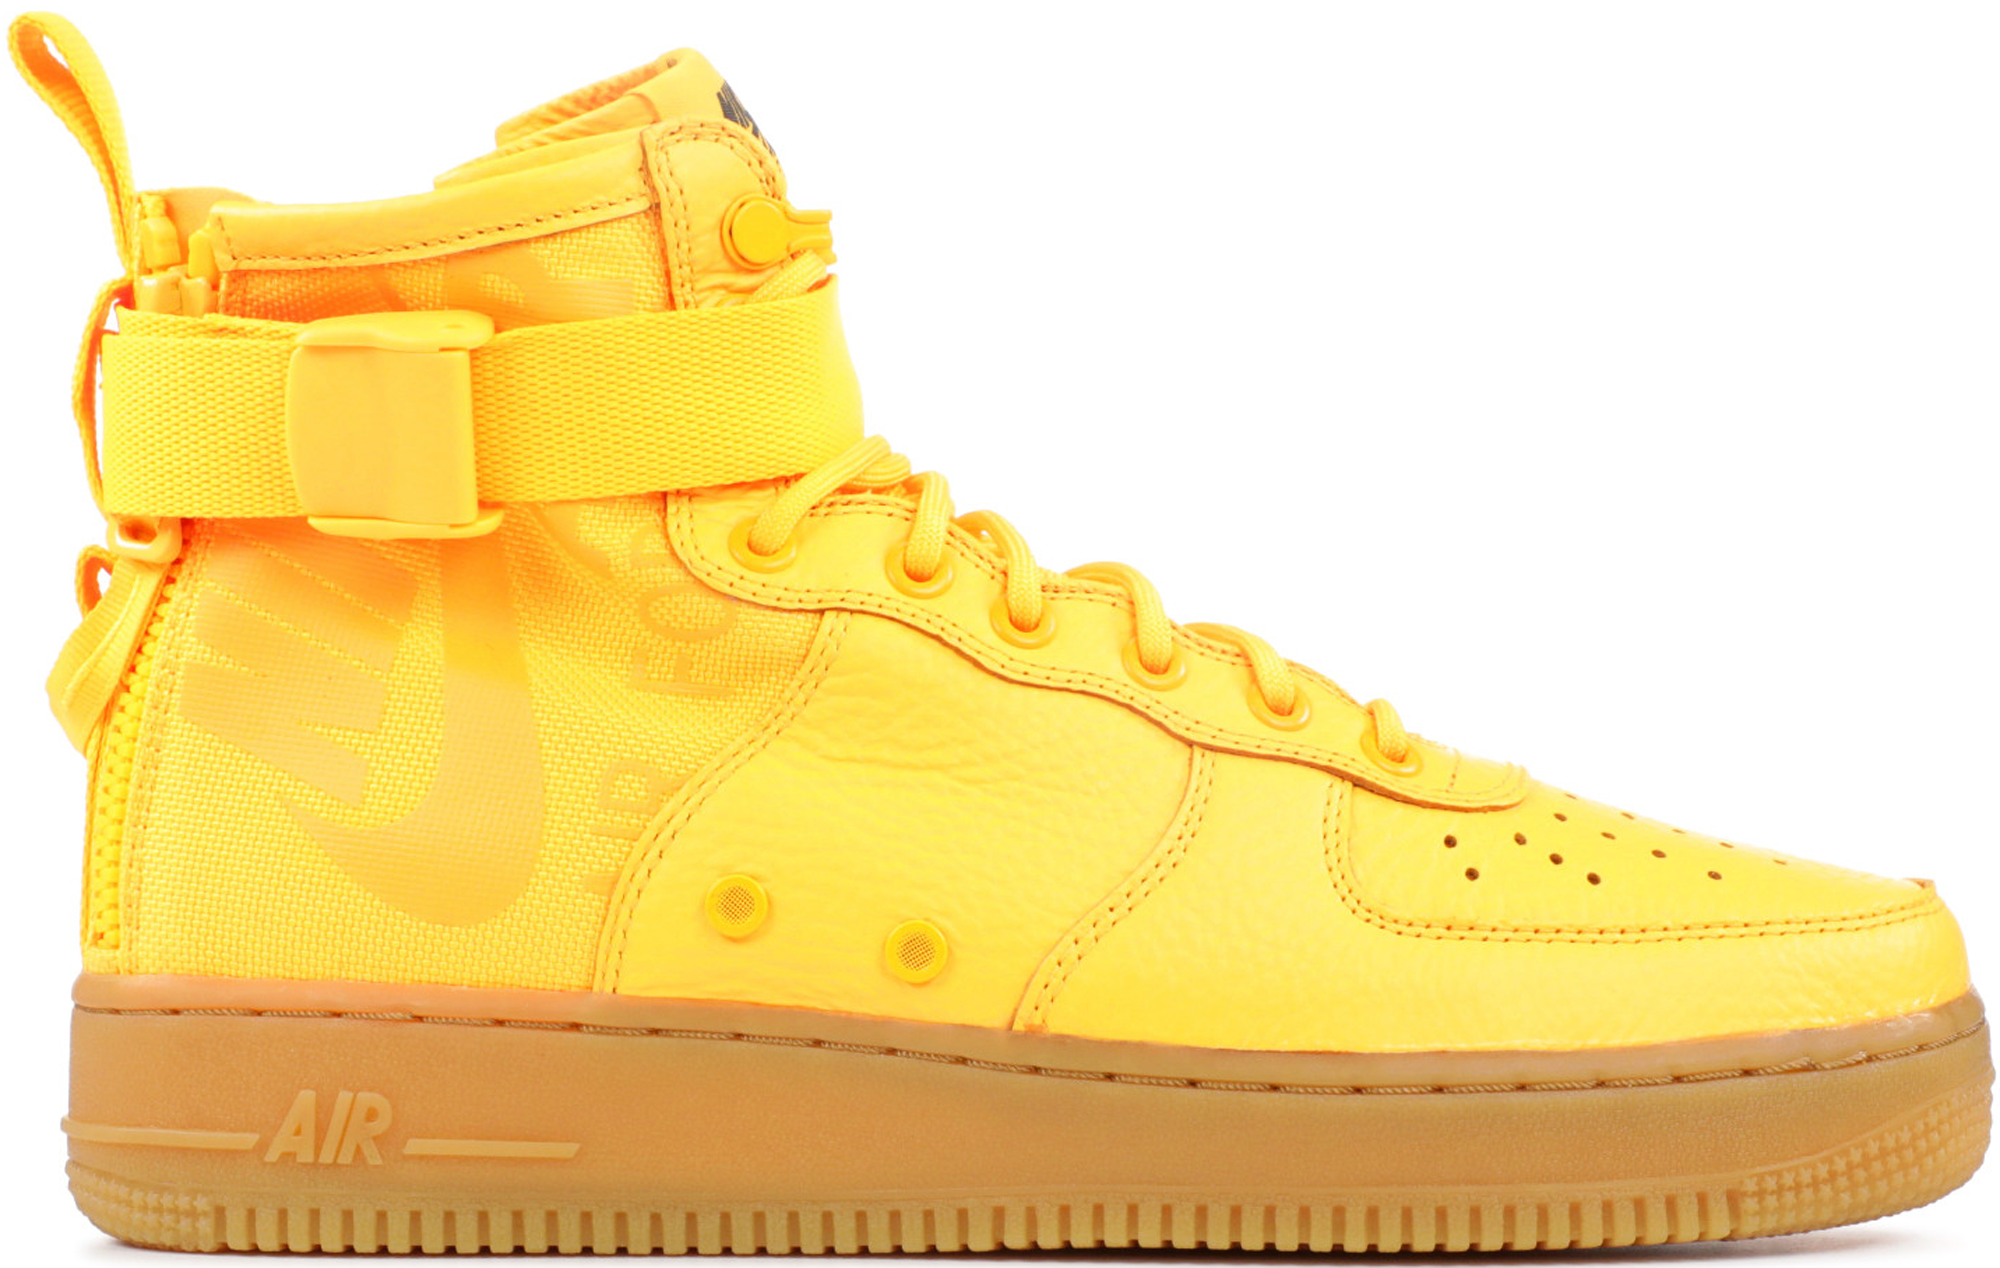 ... Odell Beckham Jr. x Nike SF Air Force 1 Mid Laser Orange .